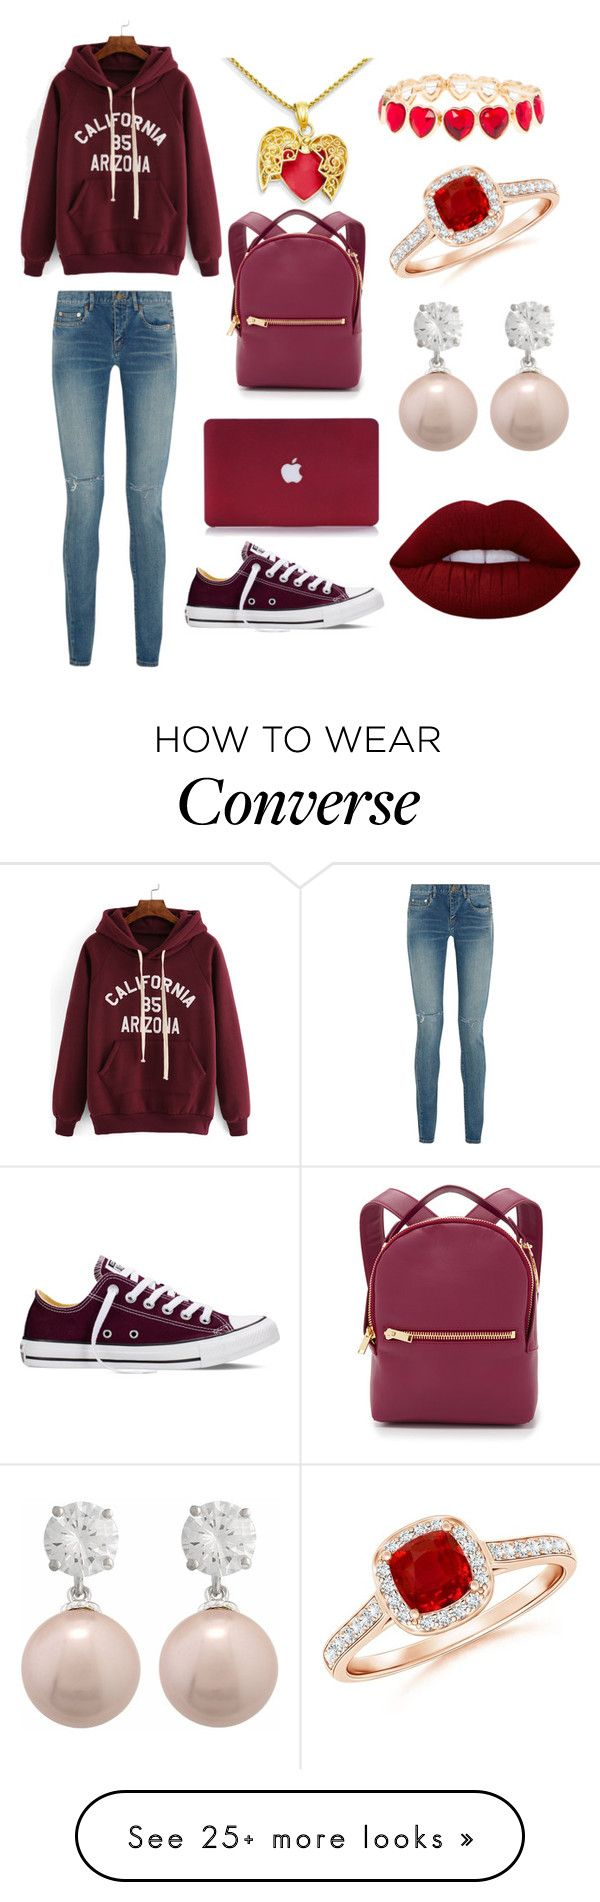 """""""Untitled #1"""" by parisbrown04 on Polyvore featuring Converse, Sophie Hulme, Yves Saint Laurent, claire's and Lime Crime"""